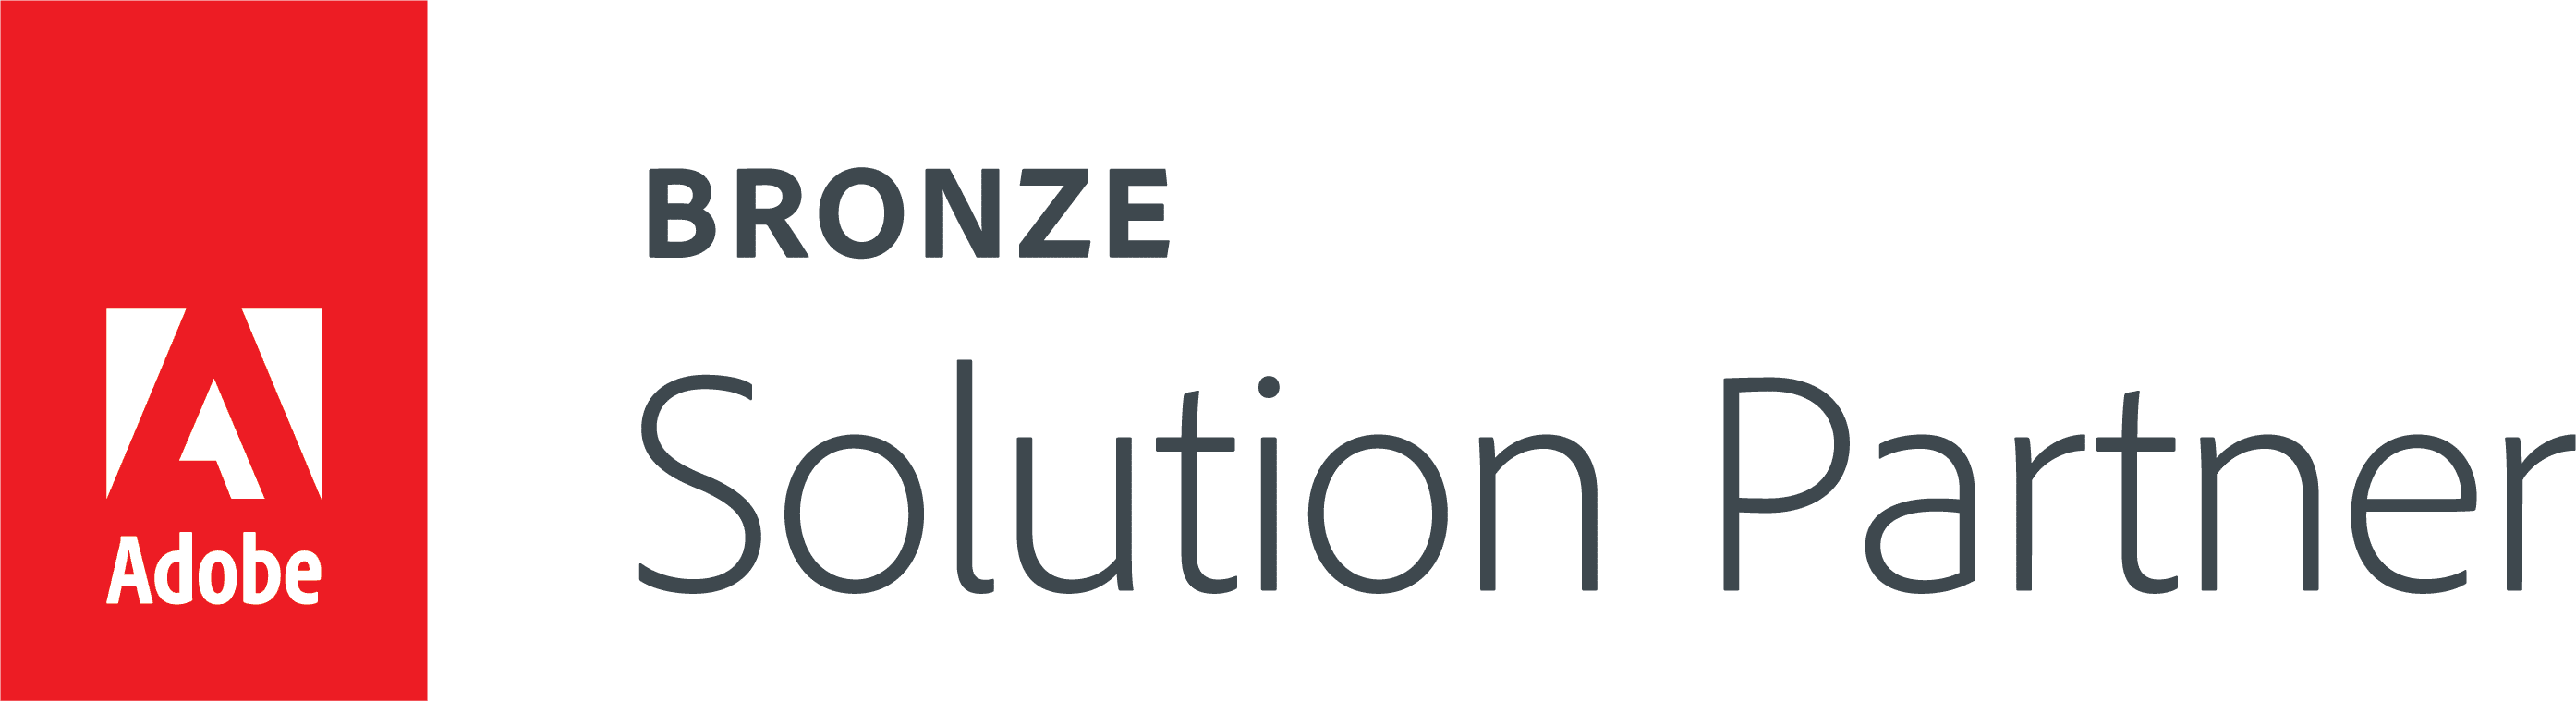 bronze solution partner